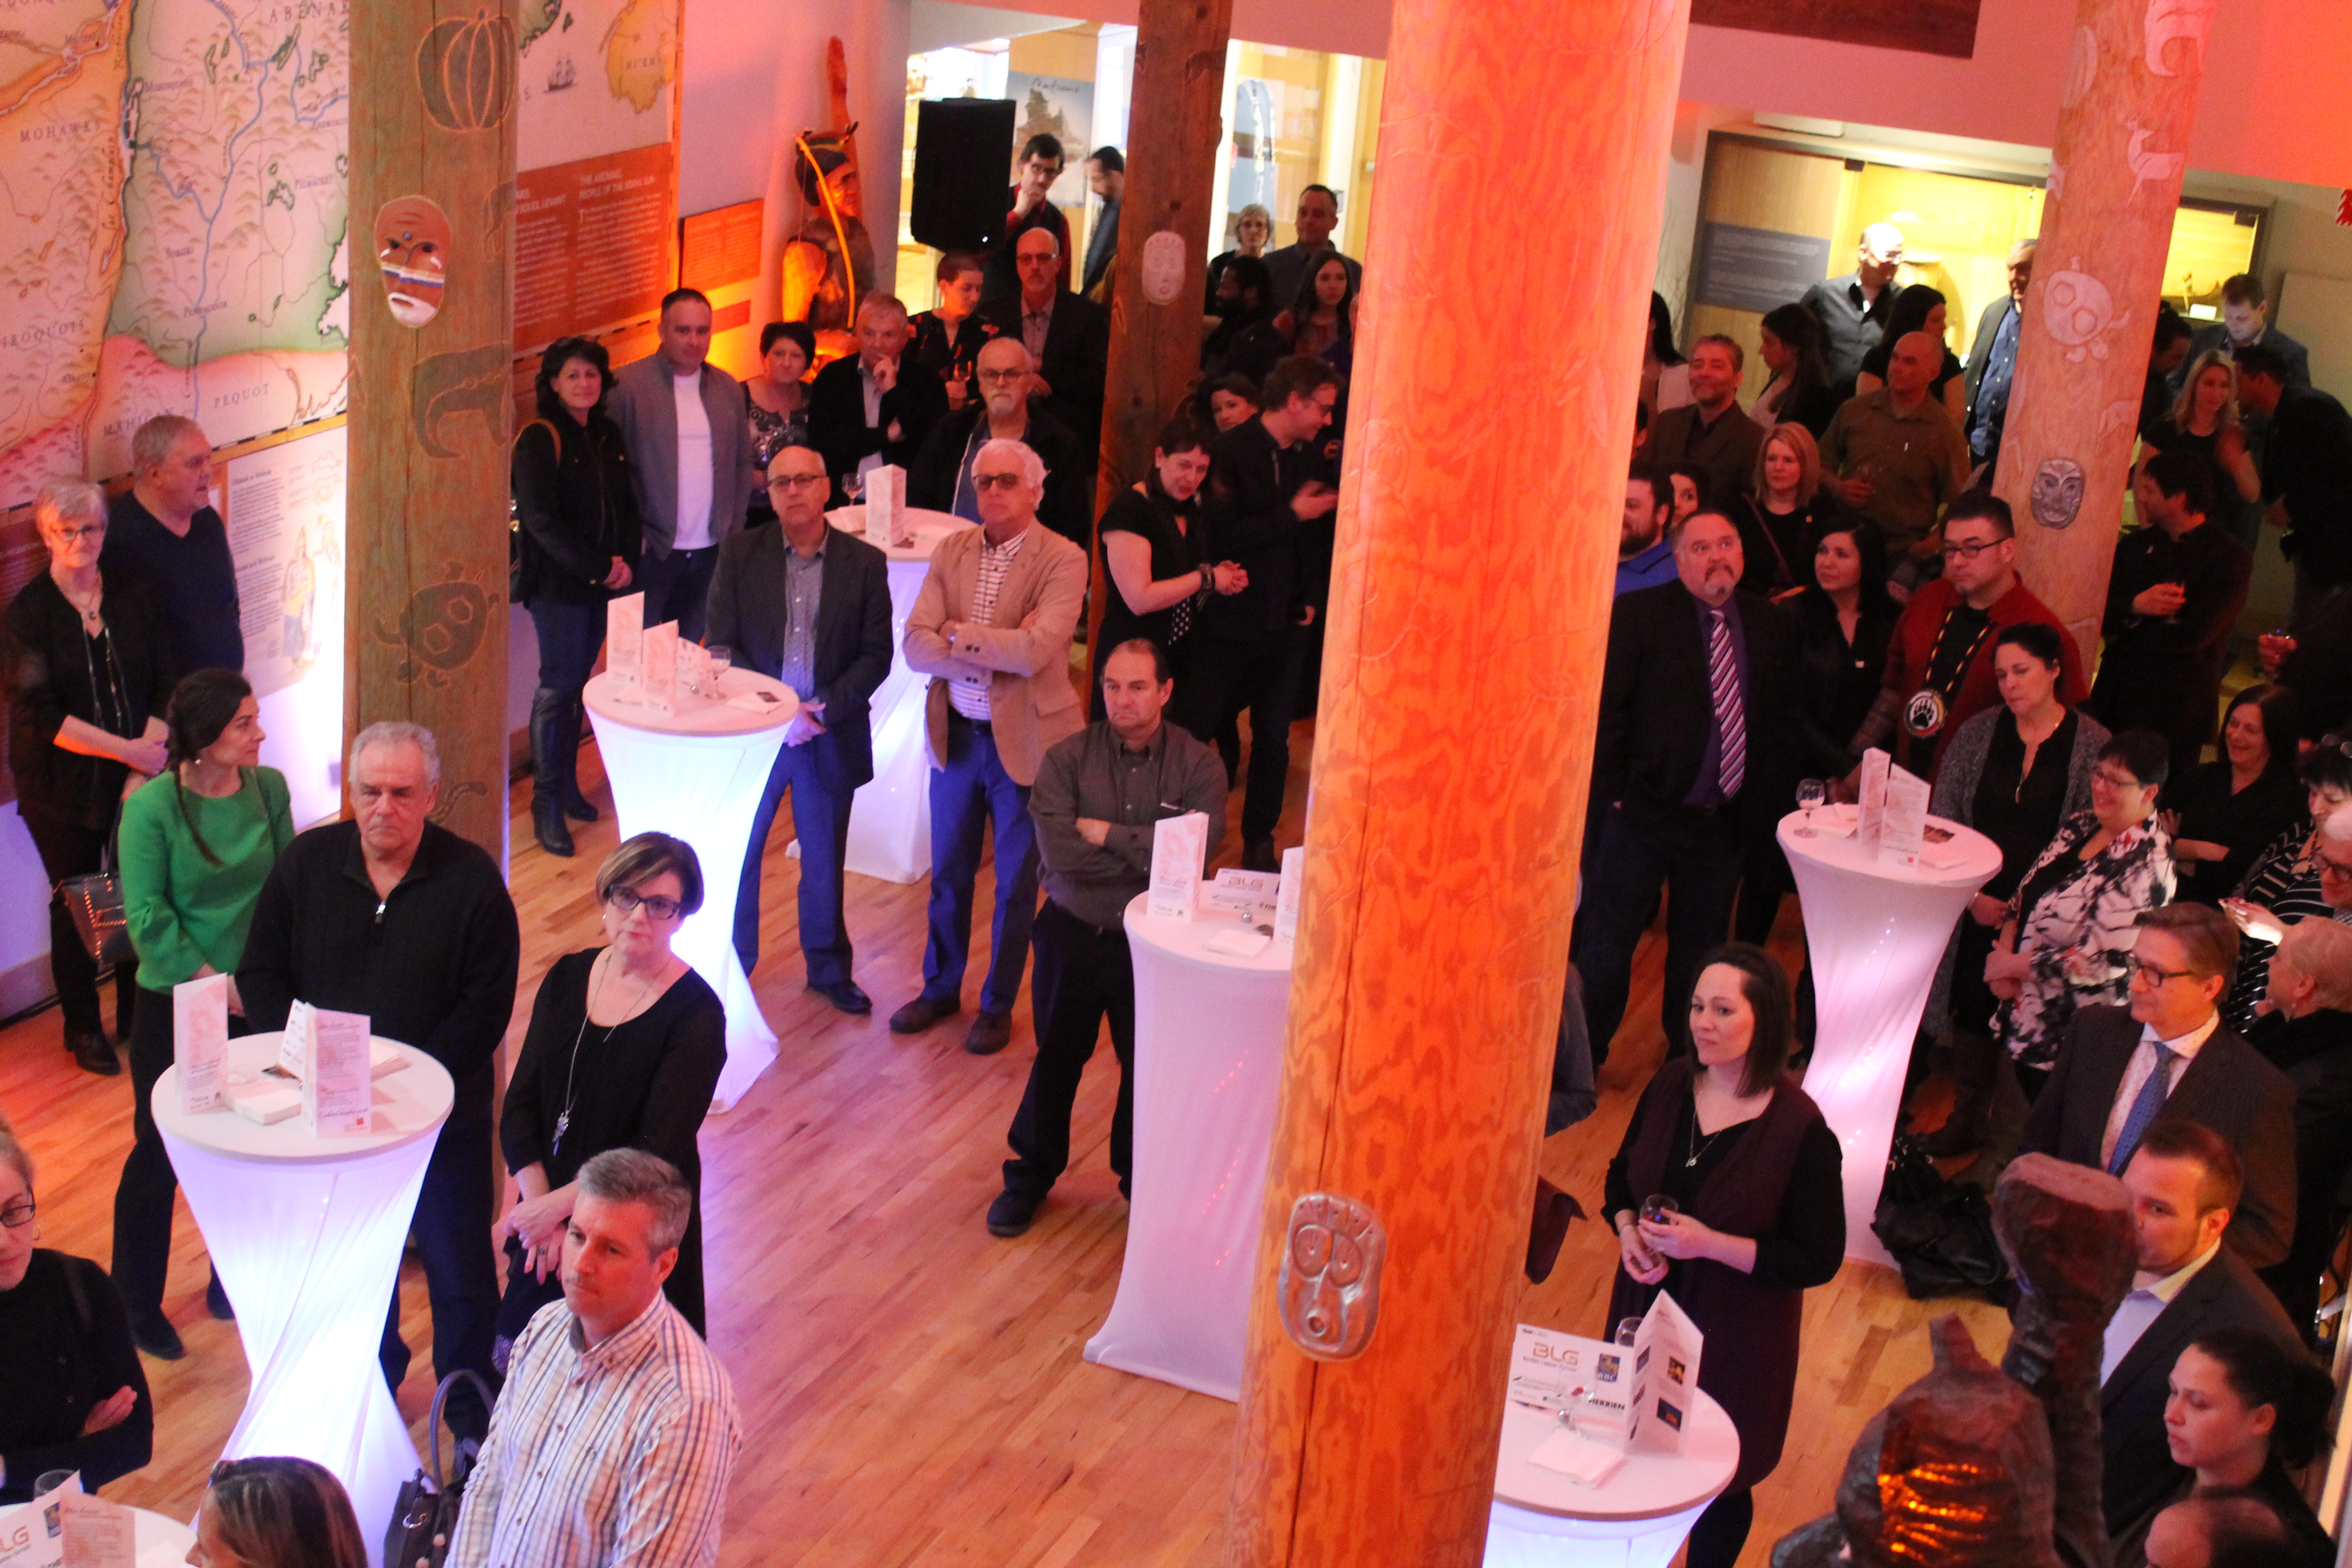 A record year for the 7th edition of the Musée des Abénakis fundraising cocktail party!